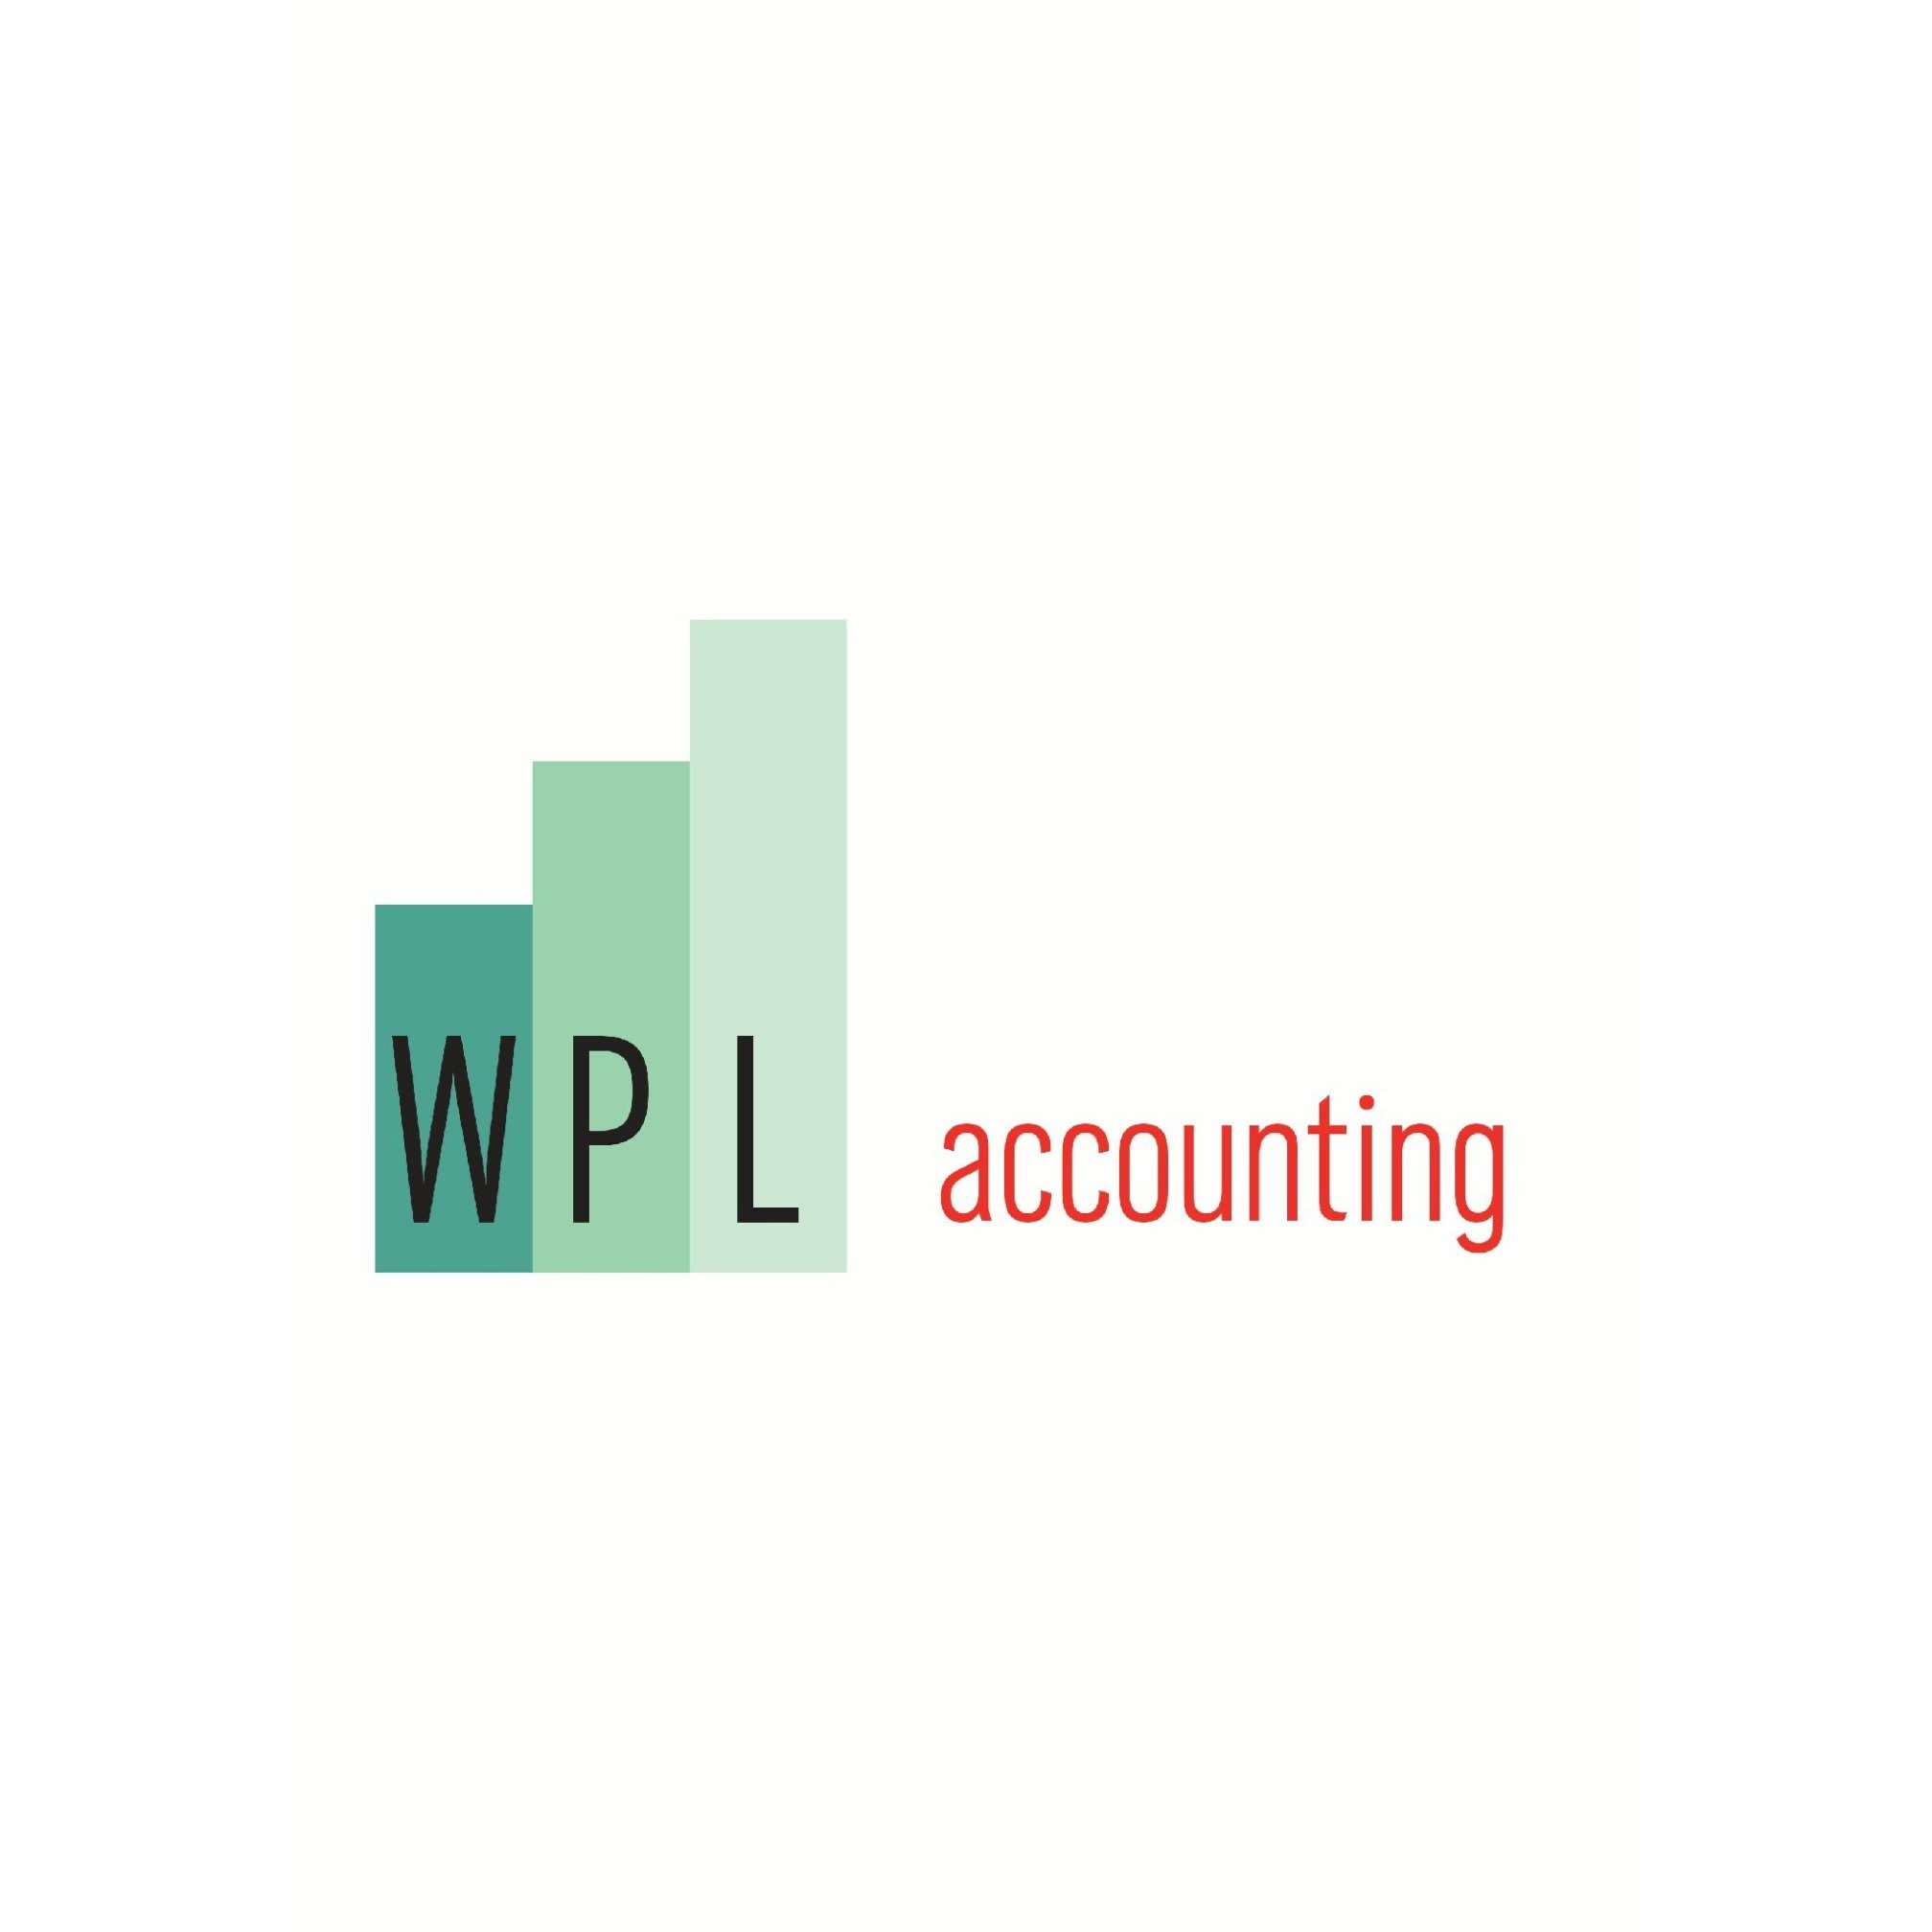 W P L Accounting Ltd